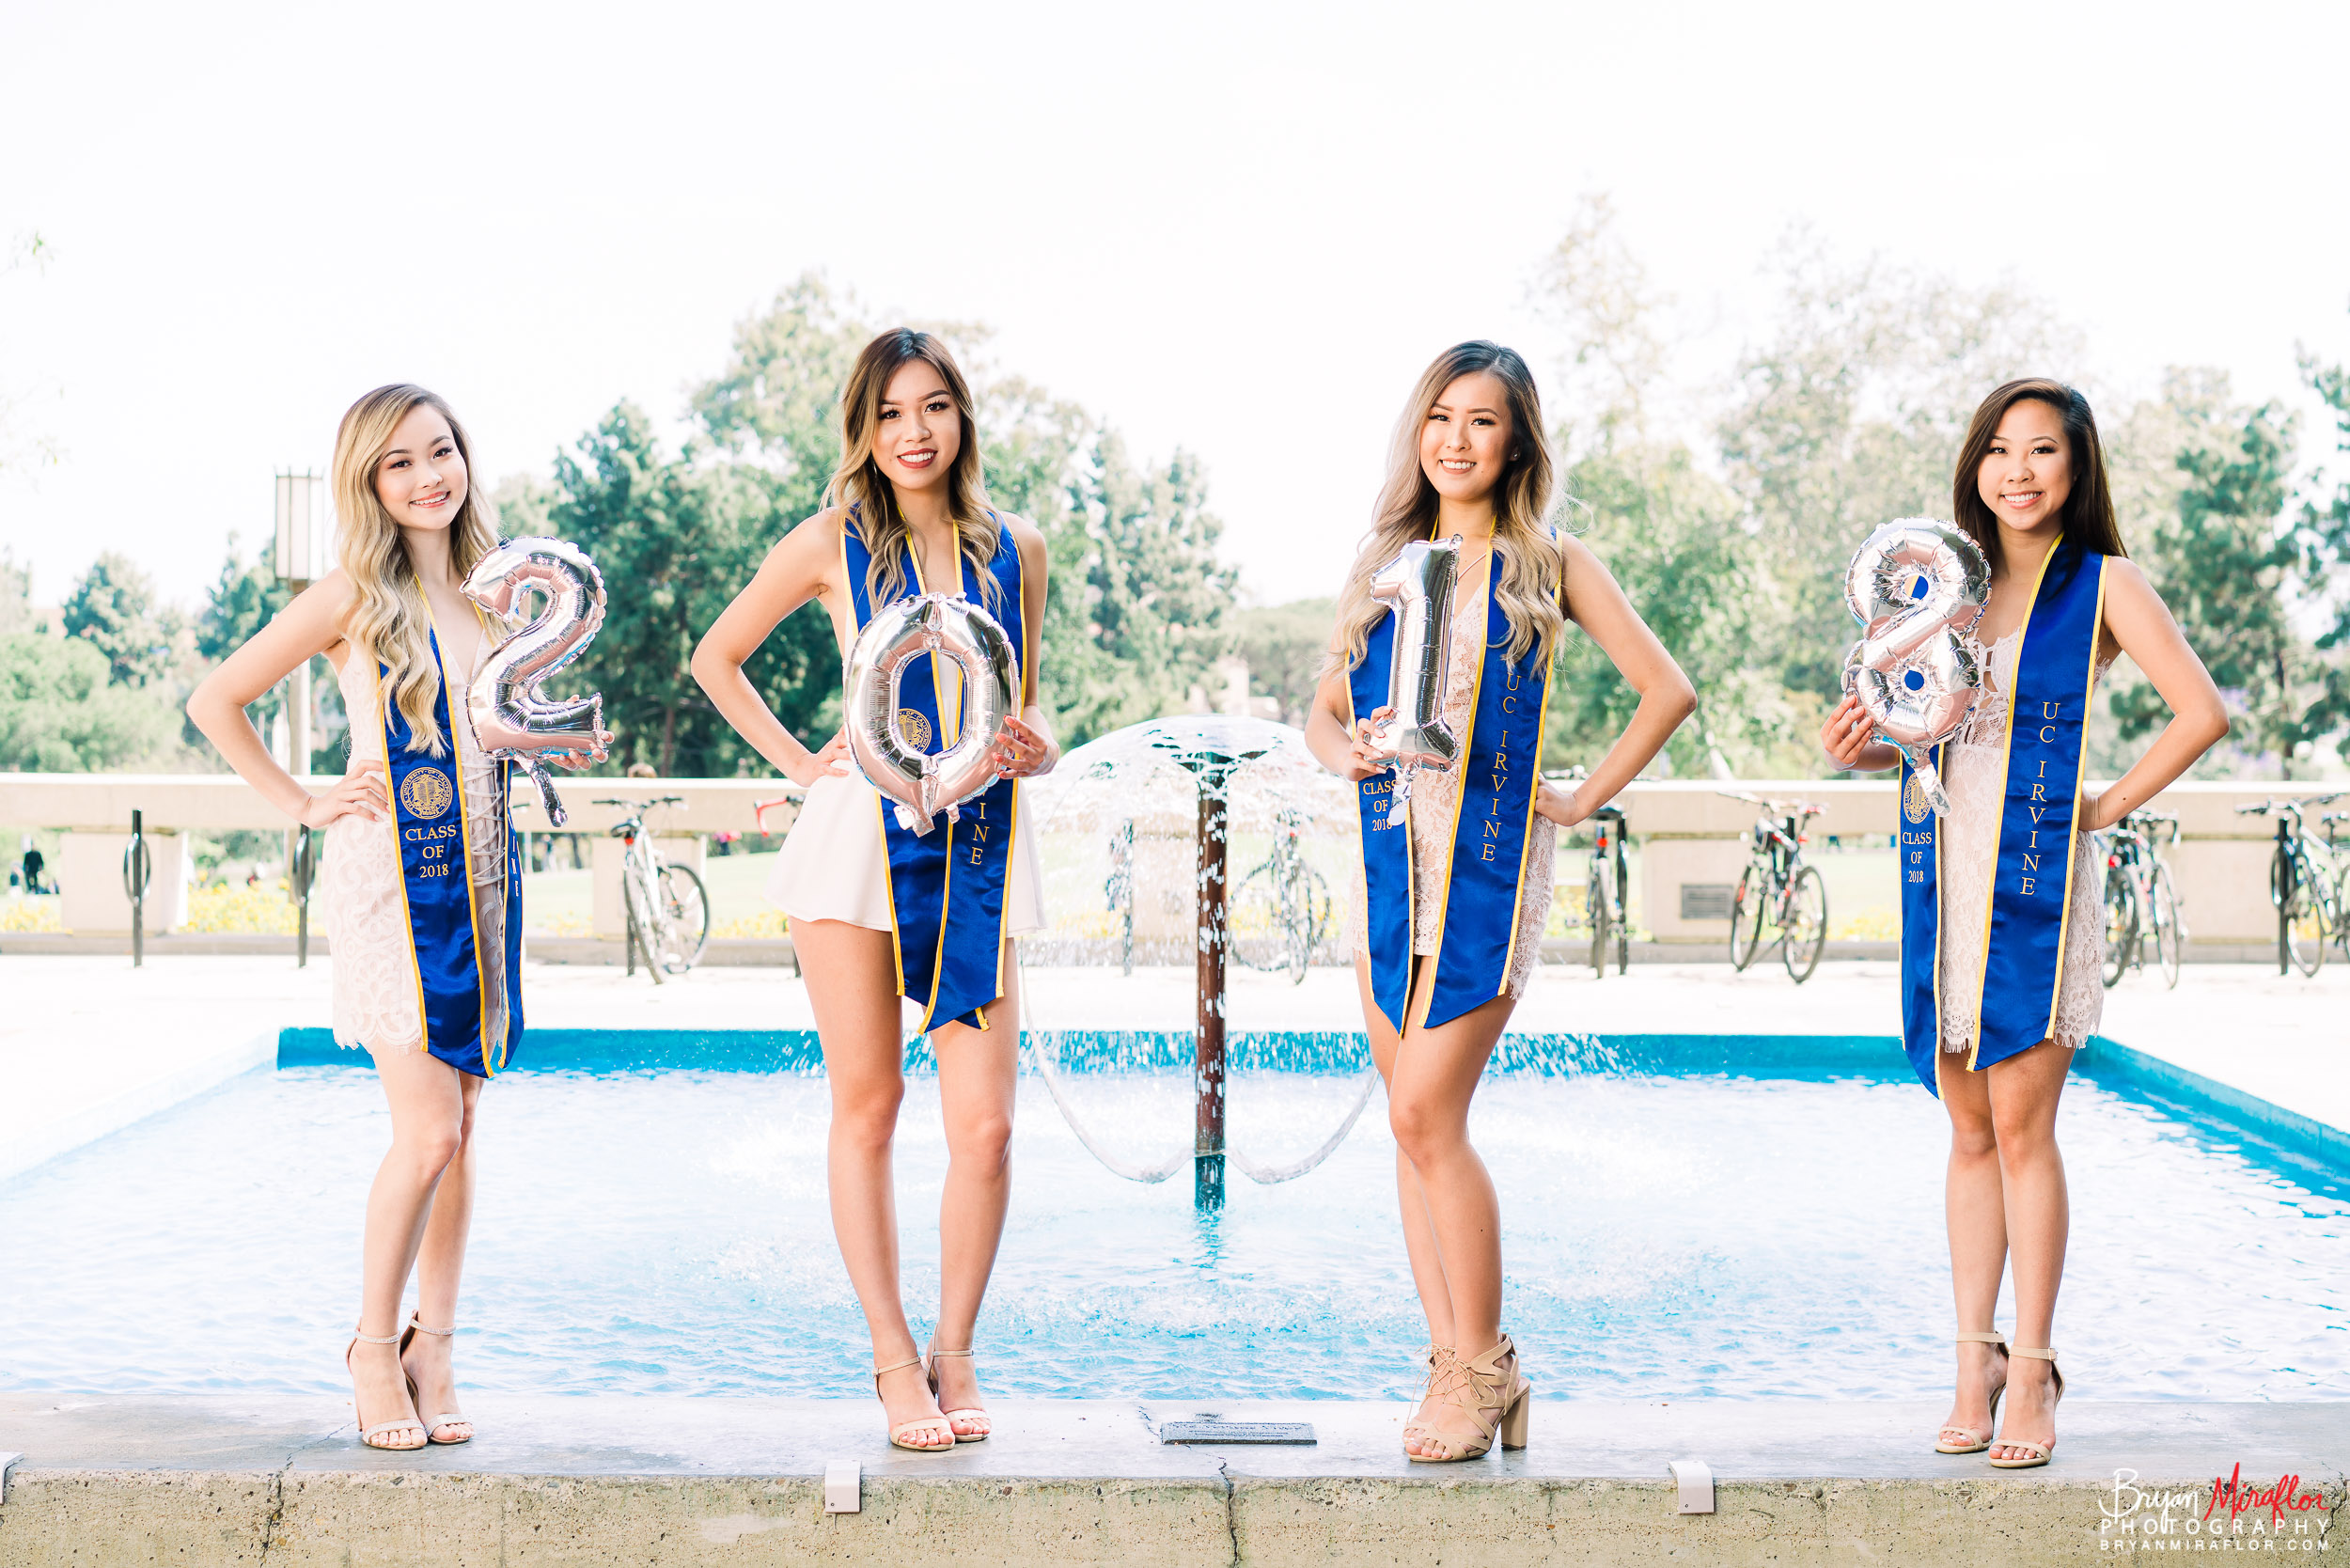 Bryan-Miraflor-Photography-aKDPhi-UCI-Grad-Portraits-Infinity-Fountain-Group-20180601-013.JPG